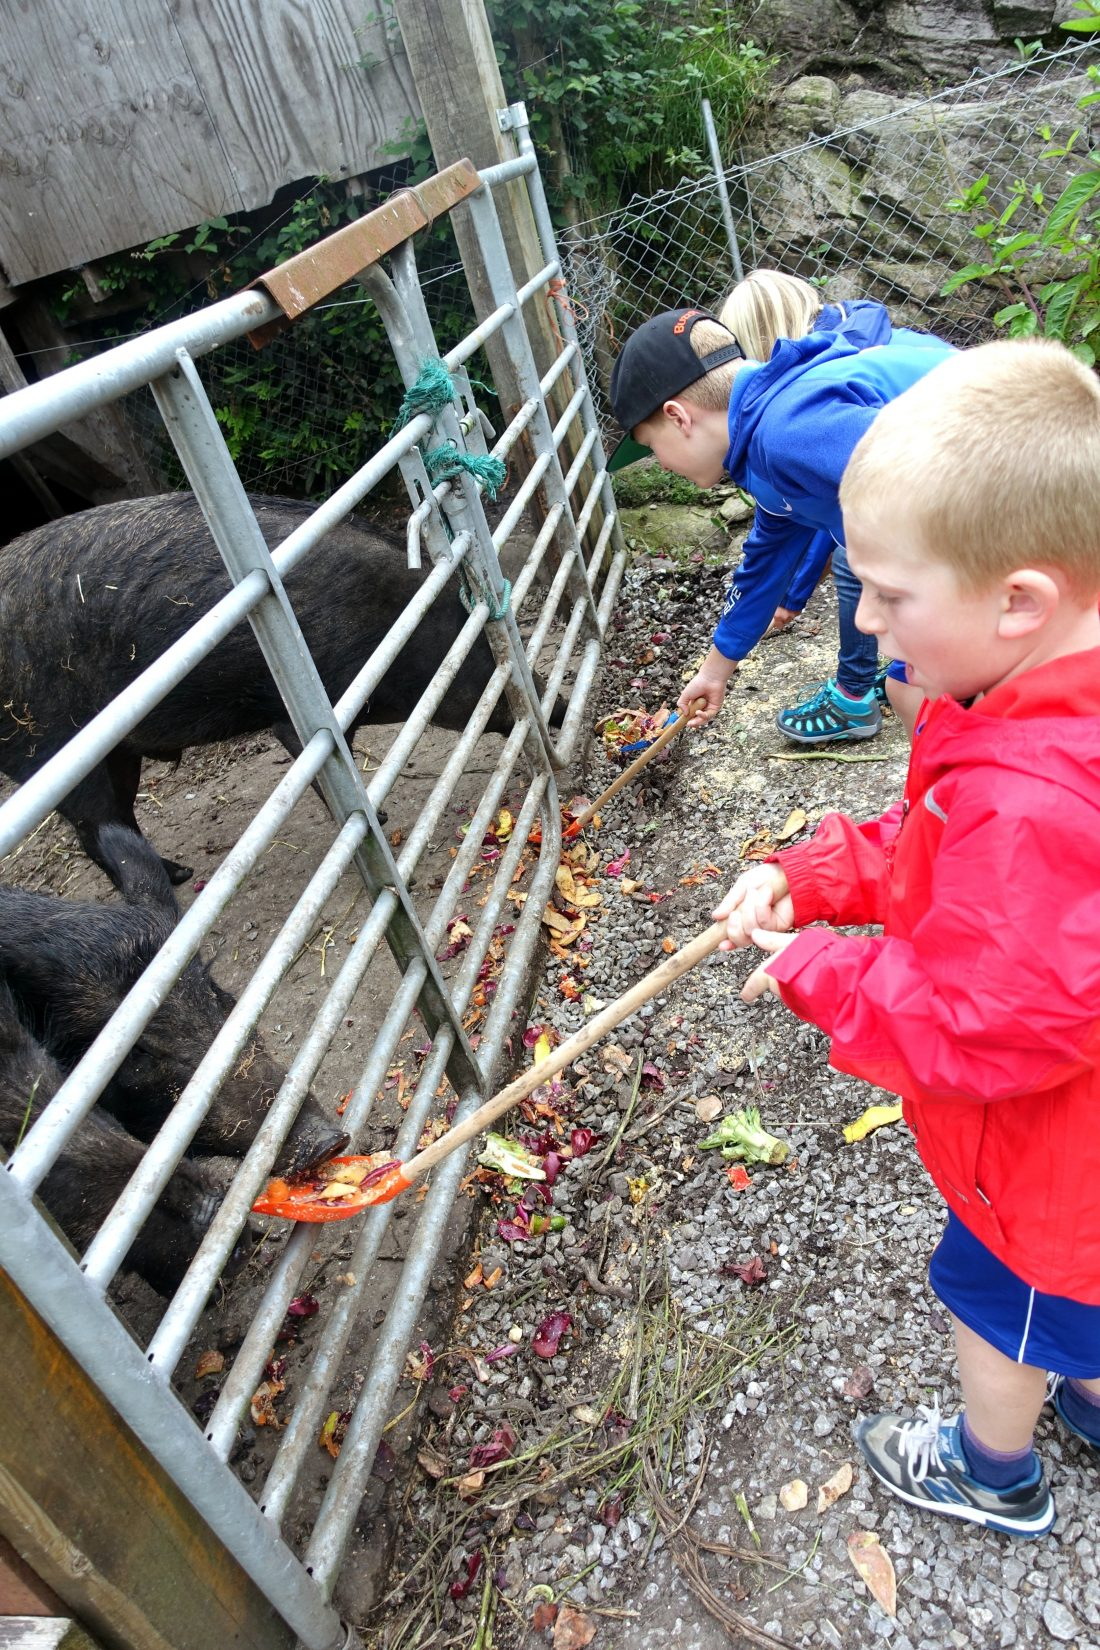 Feeding pigs at Blueberry Hill Farm